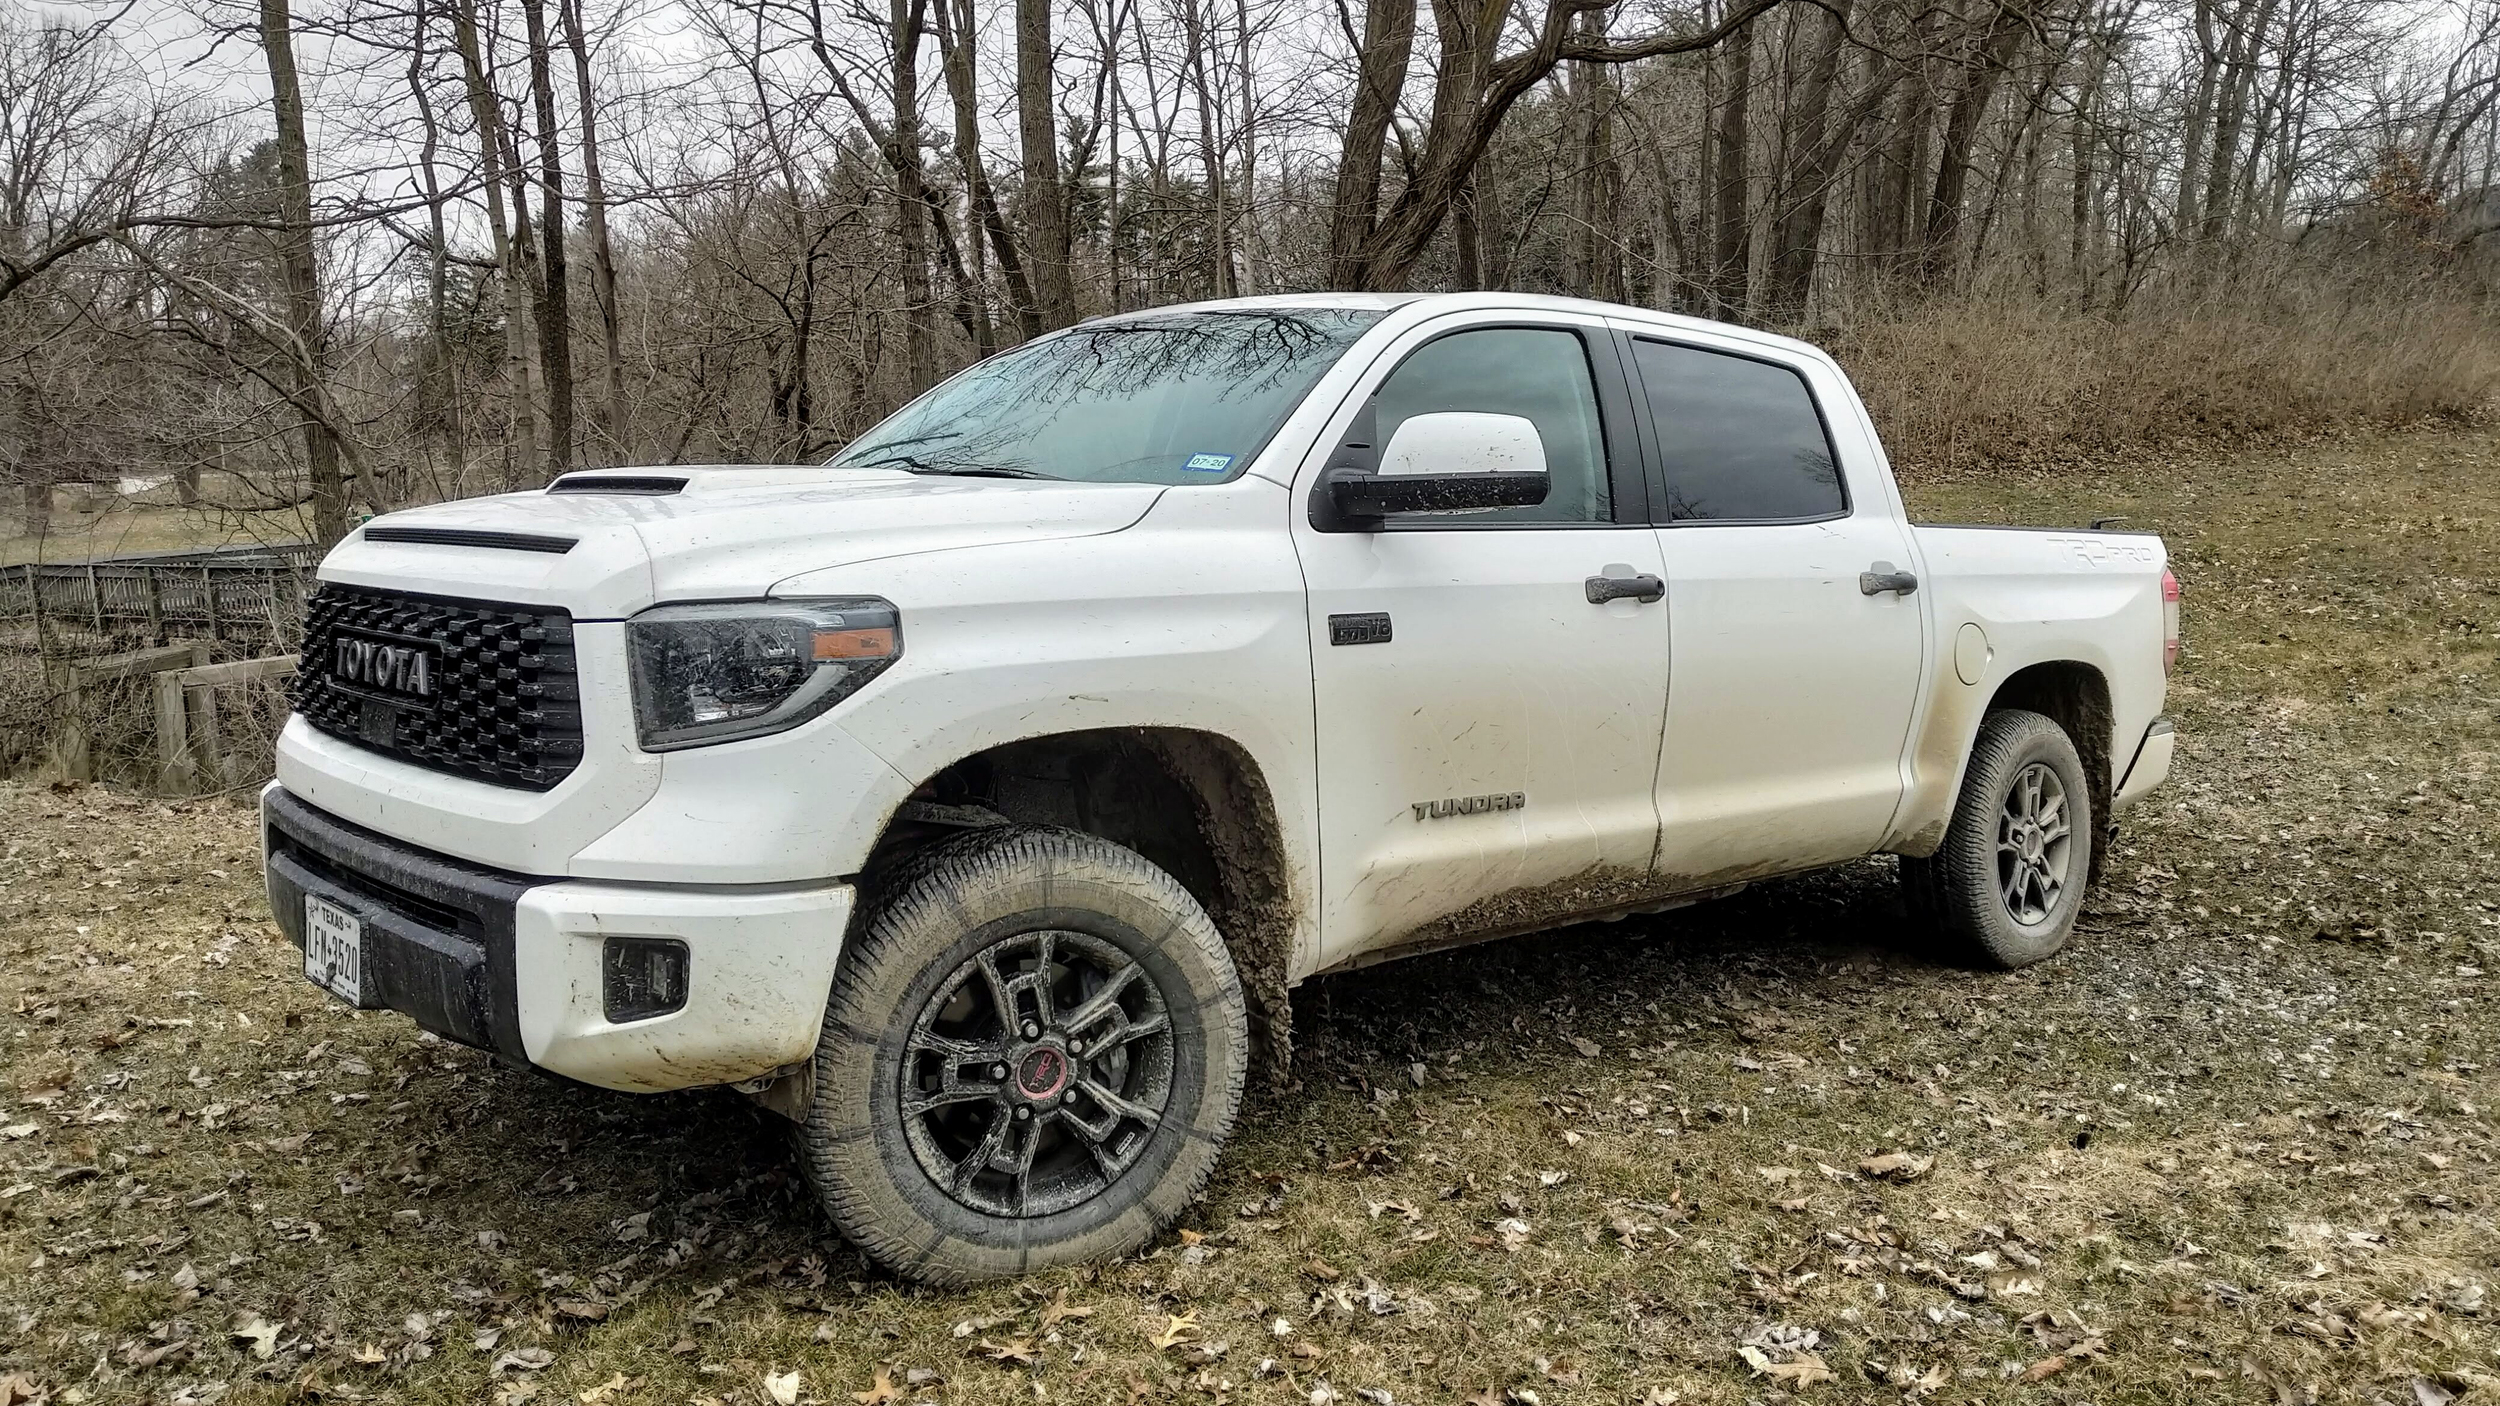 2017 Toyota Tundra Mpg >> 2019 Toyota Tundra Trd Pro Review Slogging Through The Mud